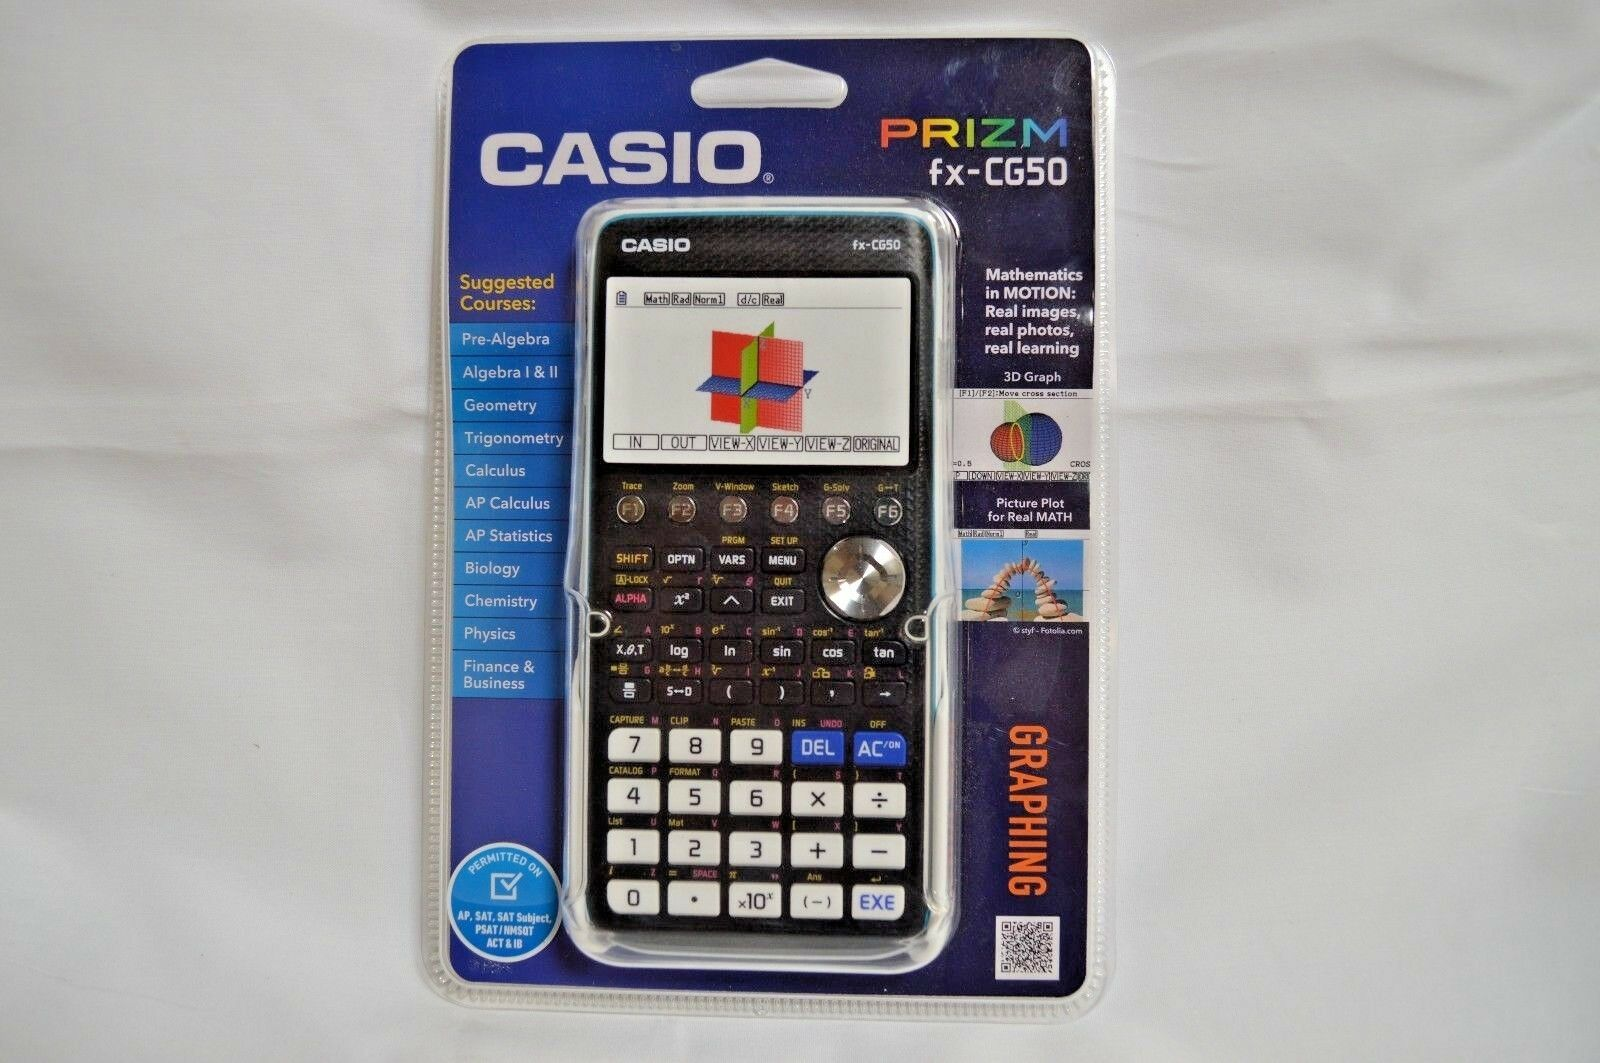 Casio FX-CG50 Prizm 3-D, Color-Display Graphing Calculator,